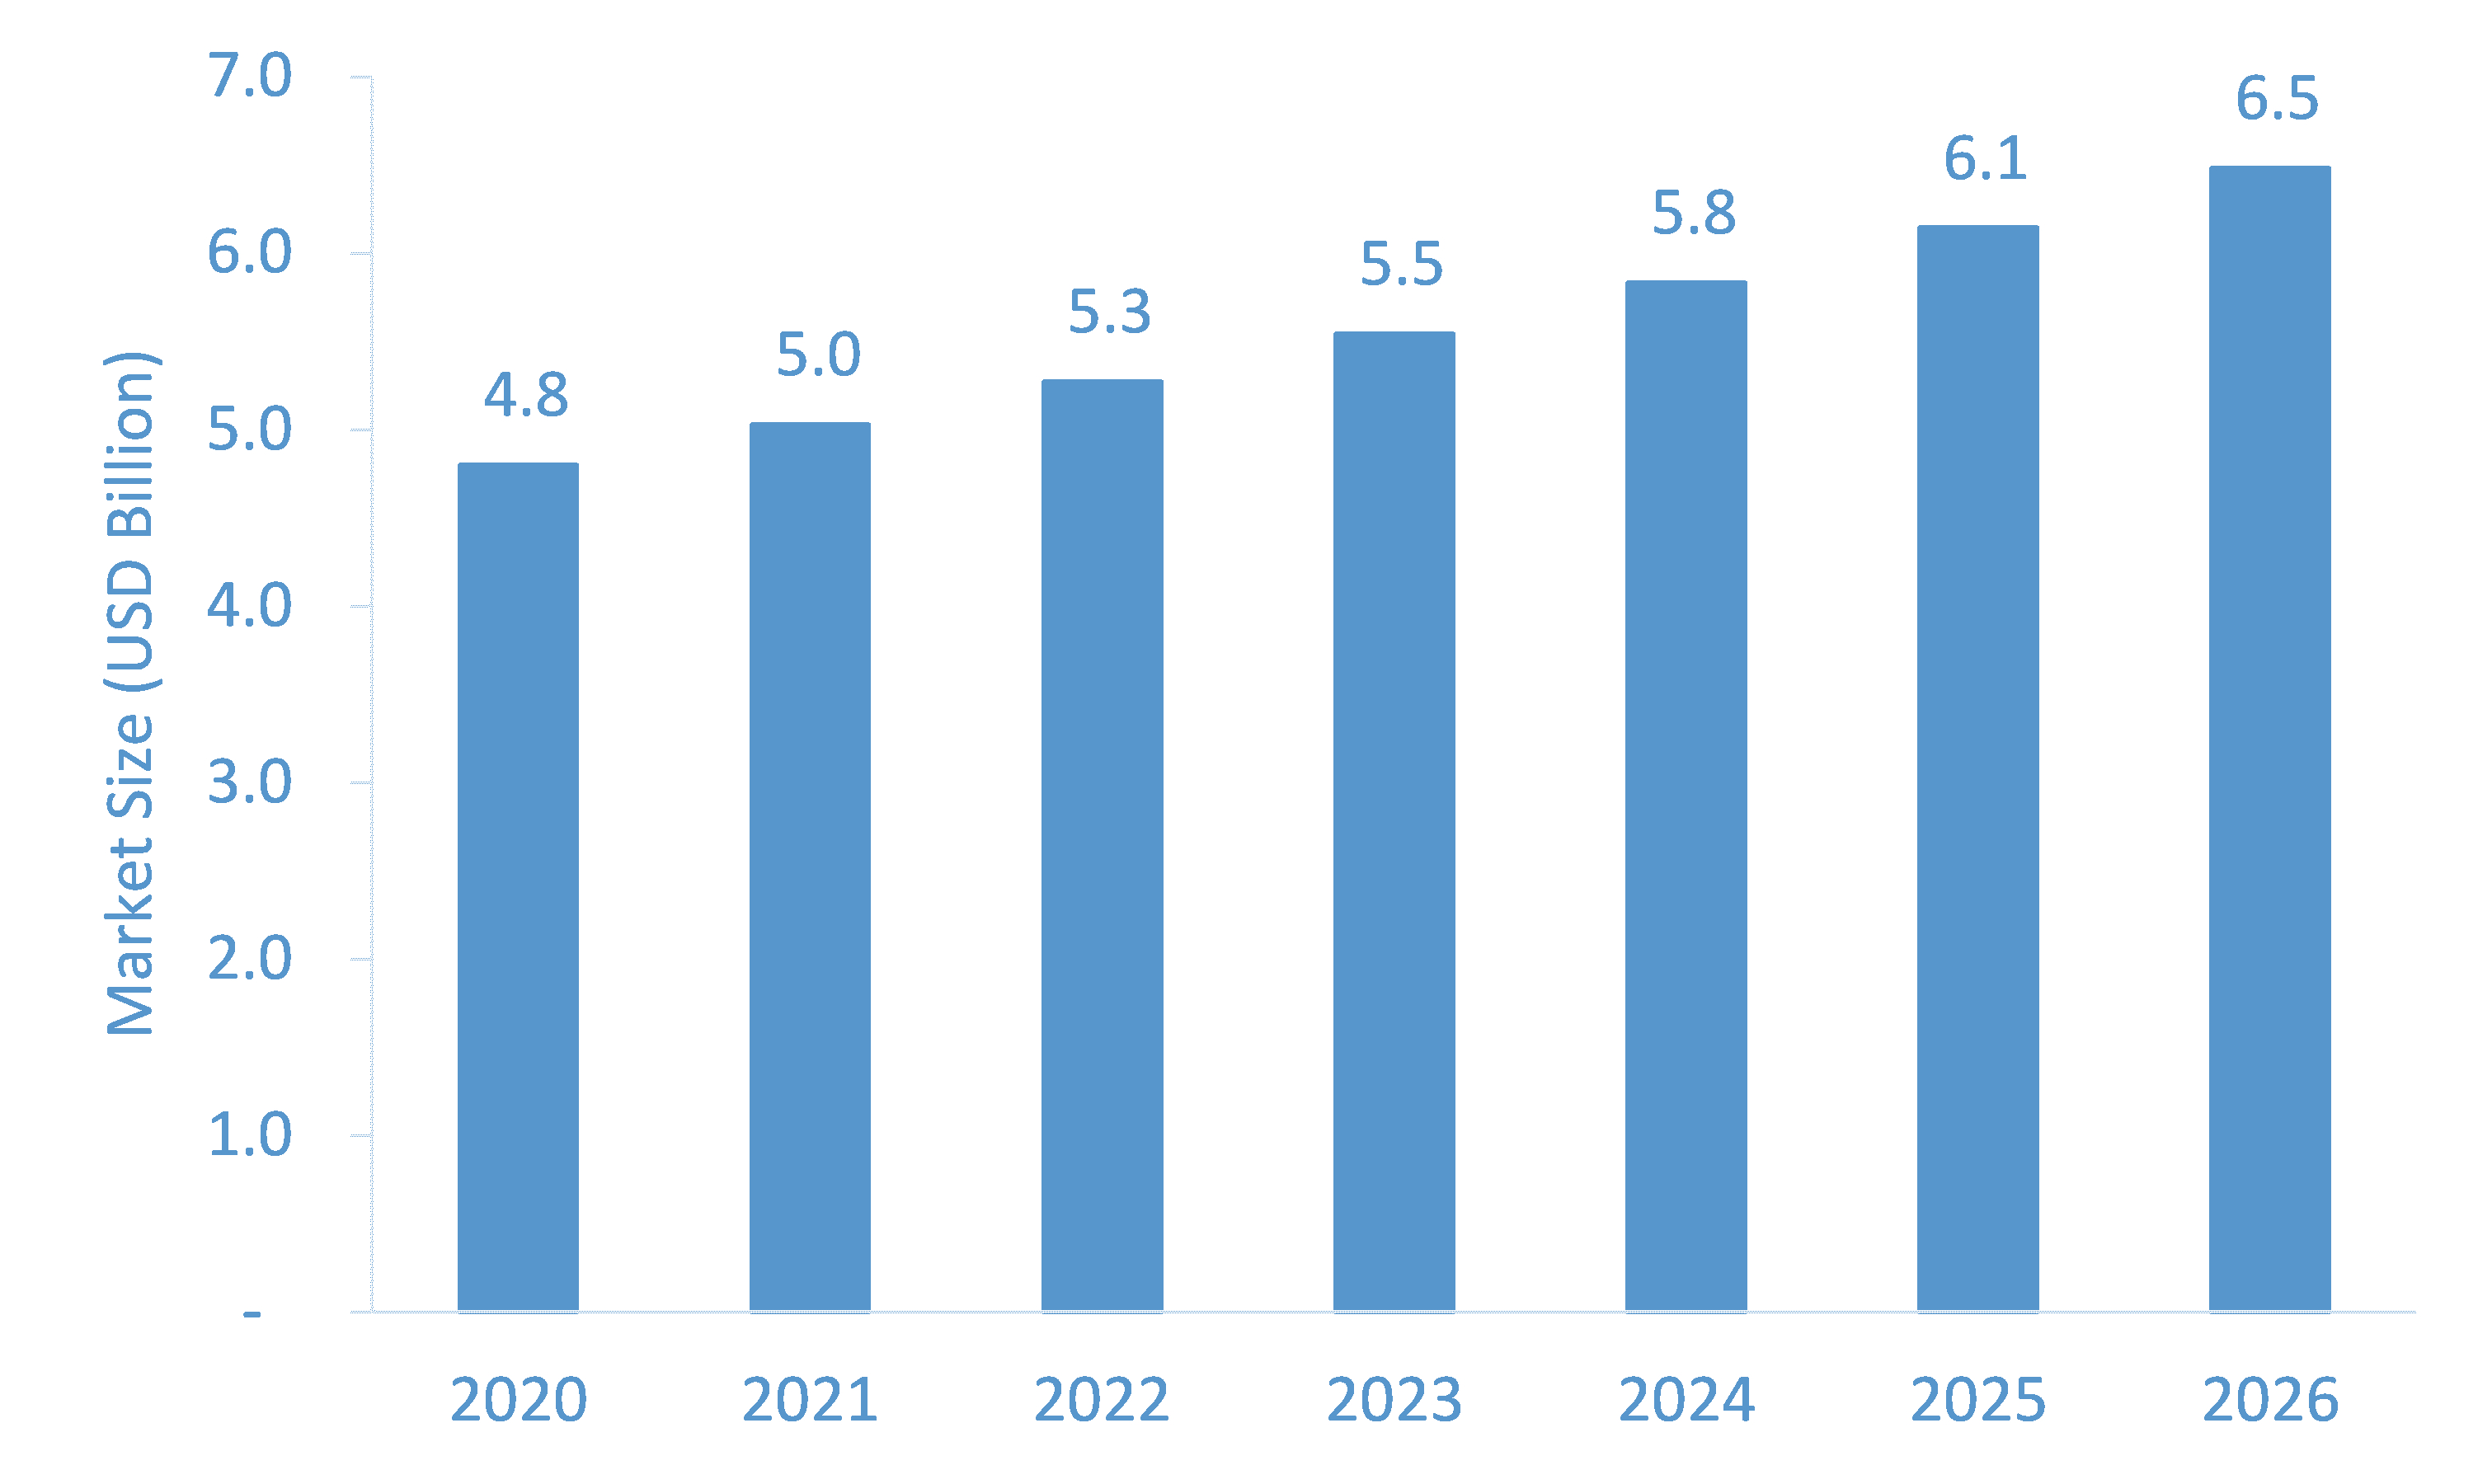 Peripheral IV Catheters Market Study Offering Insights on Latest Advancements, Trends & Analysis from 2022 to 2026